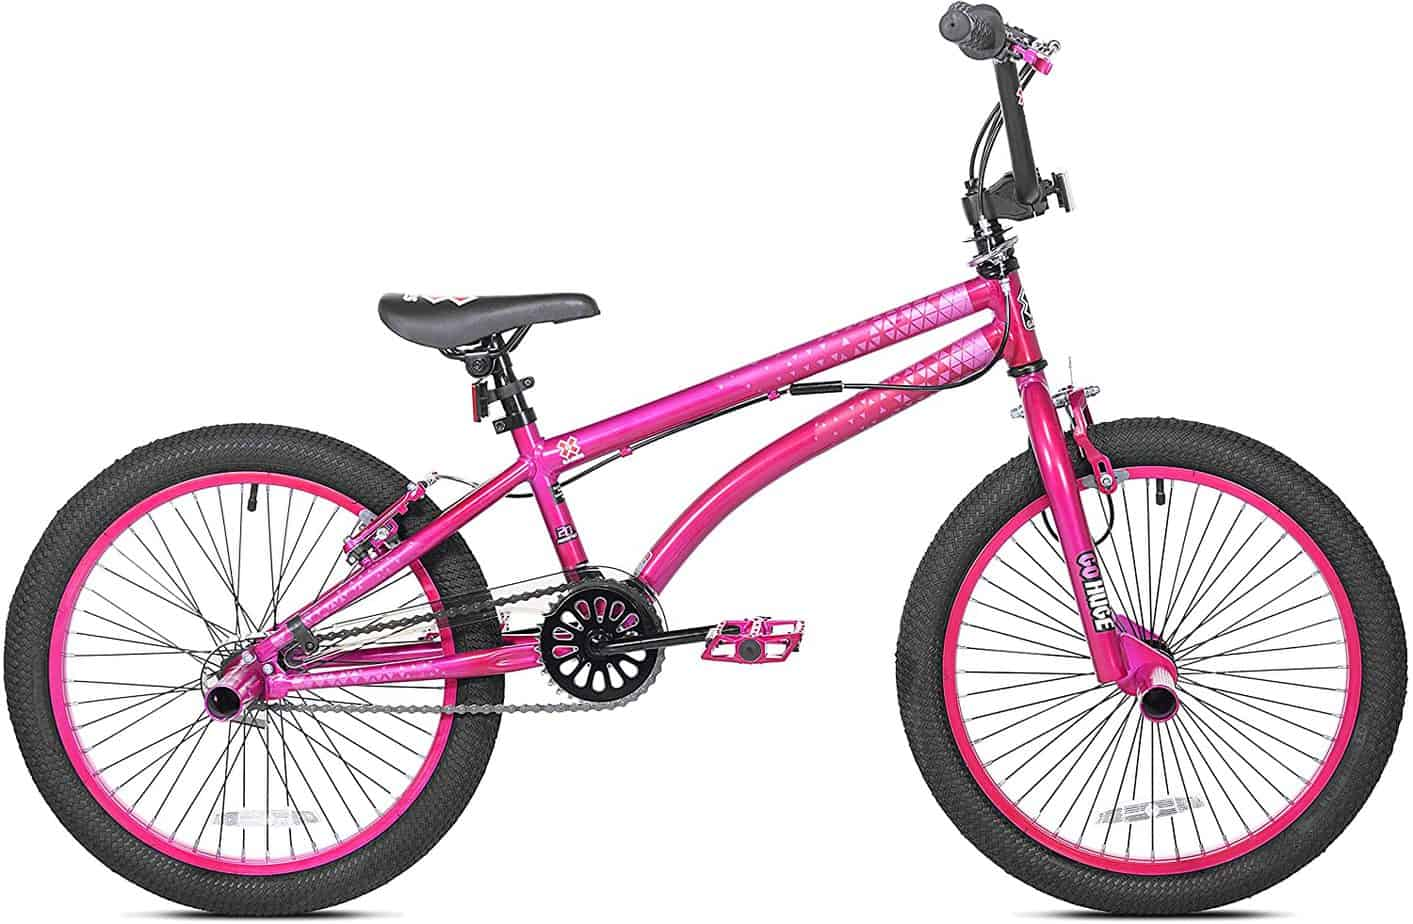 X Games Childrens-Bicycles X-Games FS20 Freestyle Bicycle